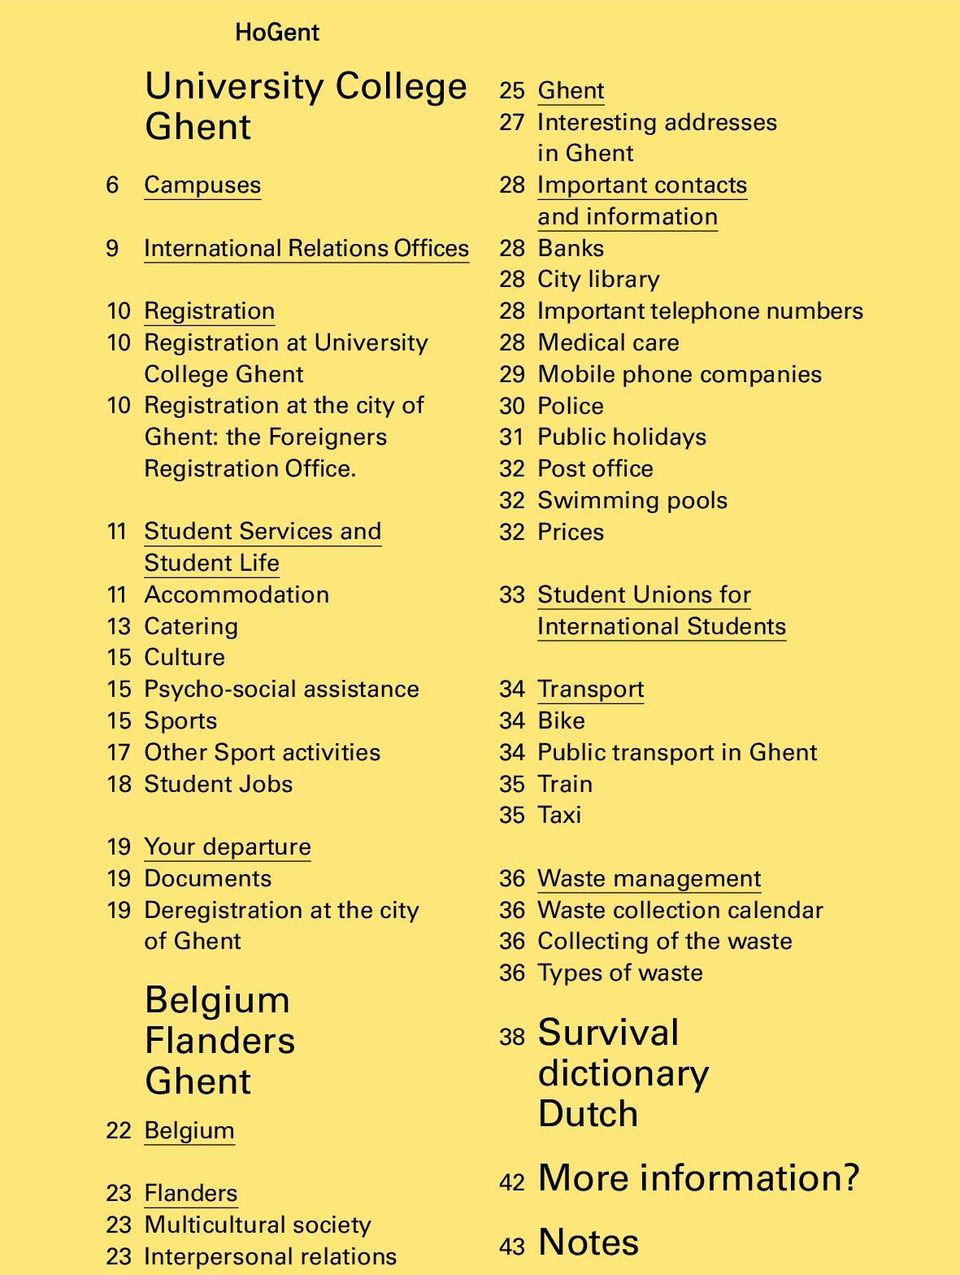 11 Student Services and Student Life 11 Accommodation 13 Catering 15 Culture 15 Psycho-social assistance 15 Sports 17 Other Sport activities 18 Student Jobs 19 Your departure 19 Documents 19